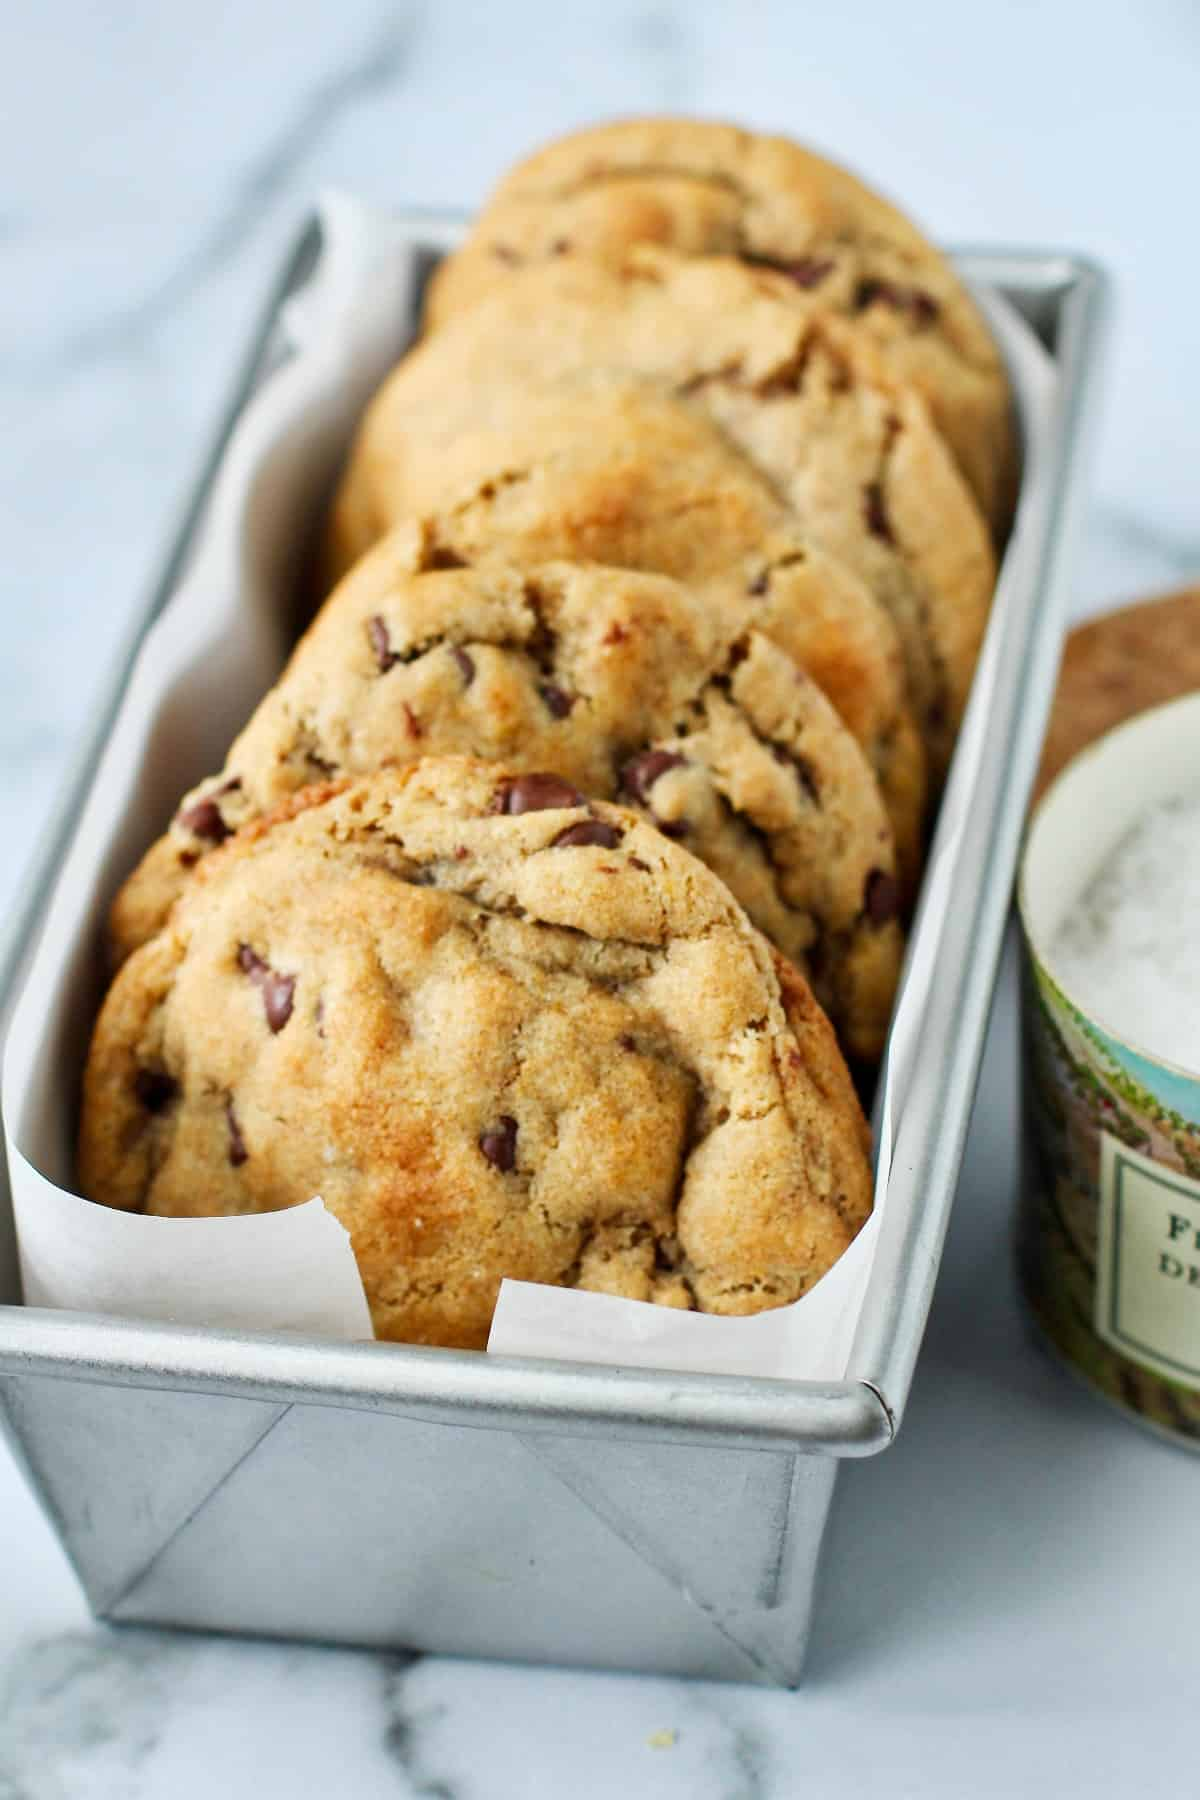 Sourdough Browned Butter Chocolate Chip Cookies